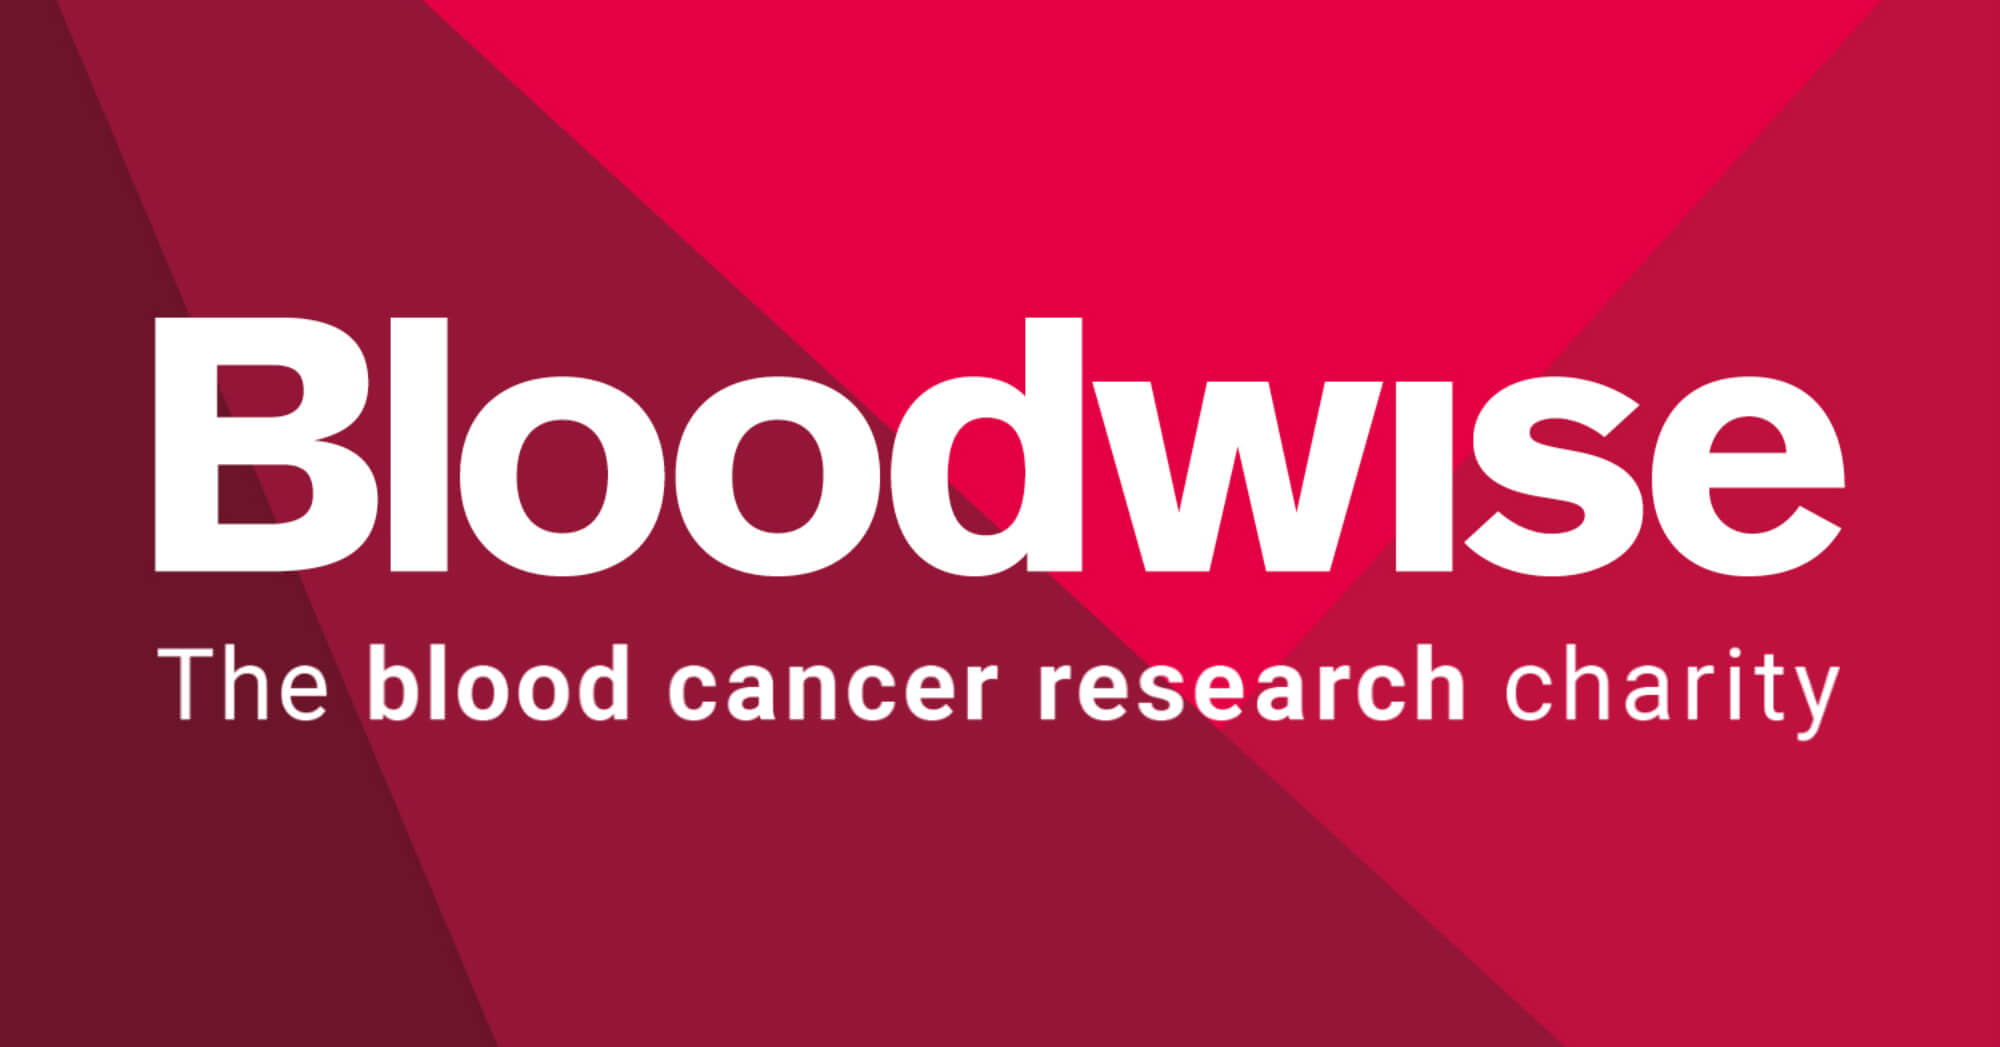 Bloodwise have been working to beat blood cancer since 1960.